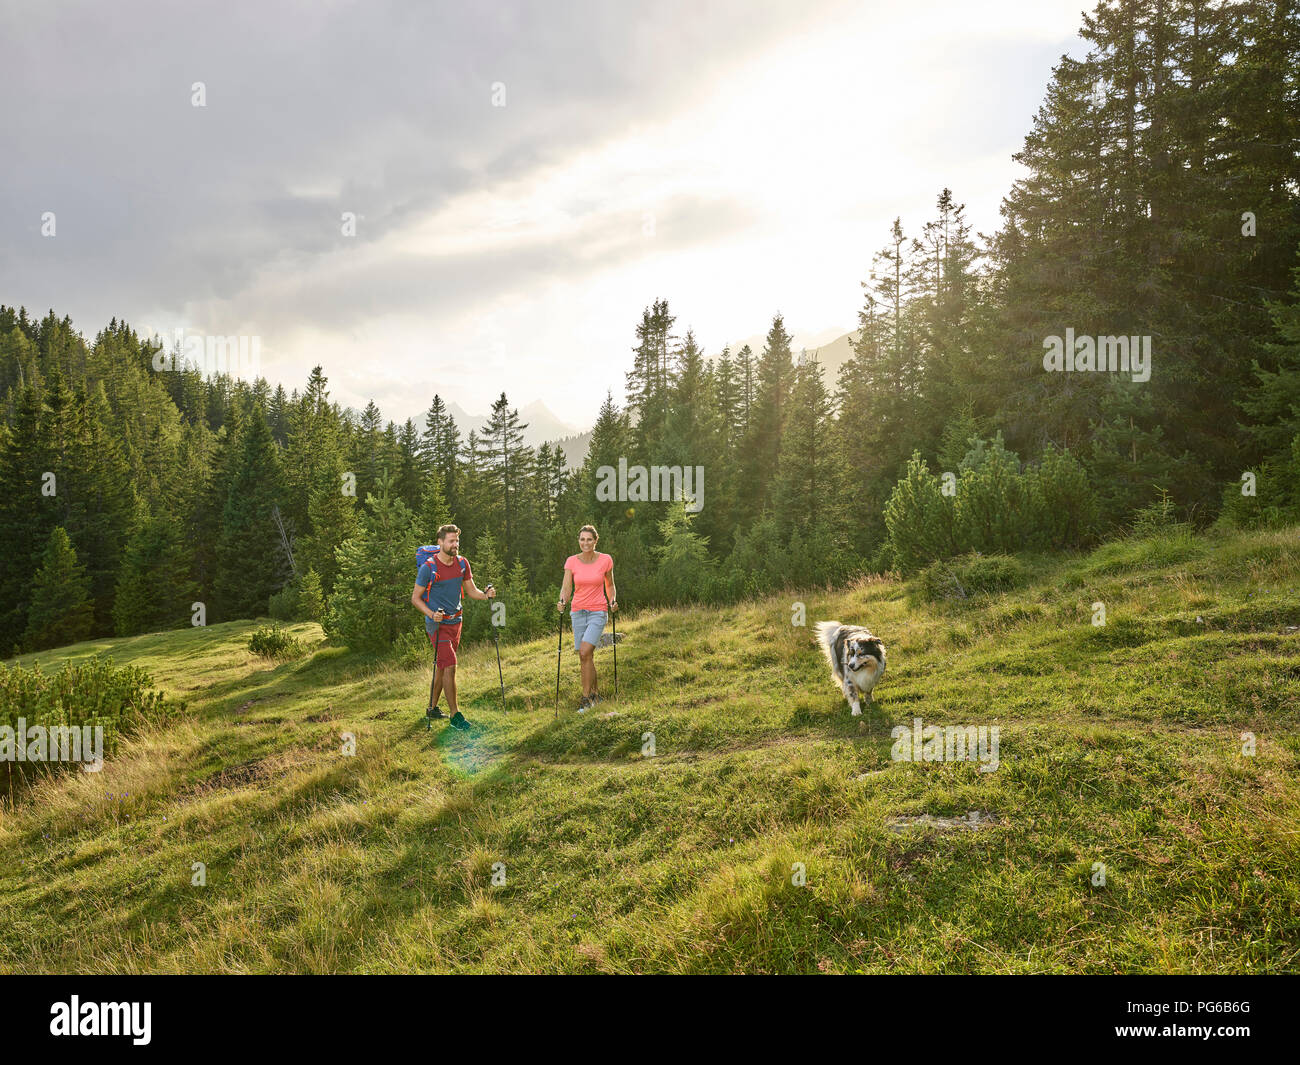 Austria, Tyrol, Mieming, couple with dog hiking in alpine scenery - Stock Image